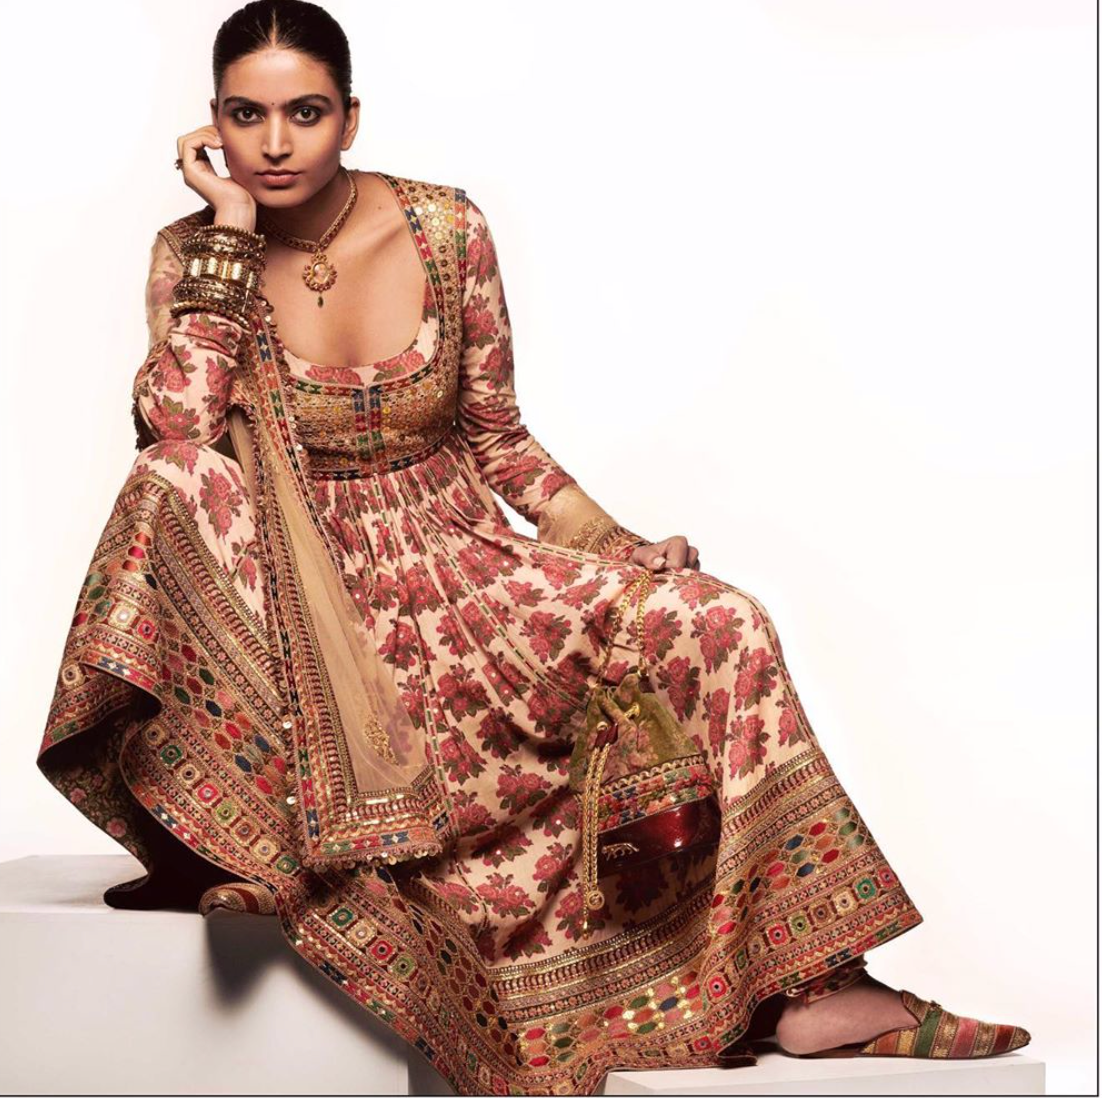 Sabyasachi Summer 2020 The Neo-Bohemian Kalidar collection - The Grand Trunk